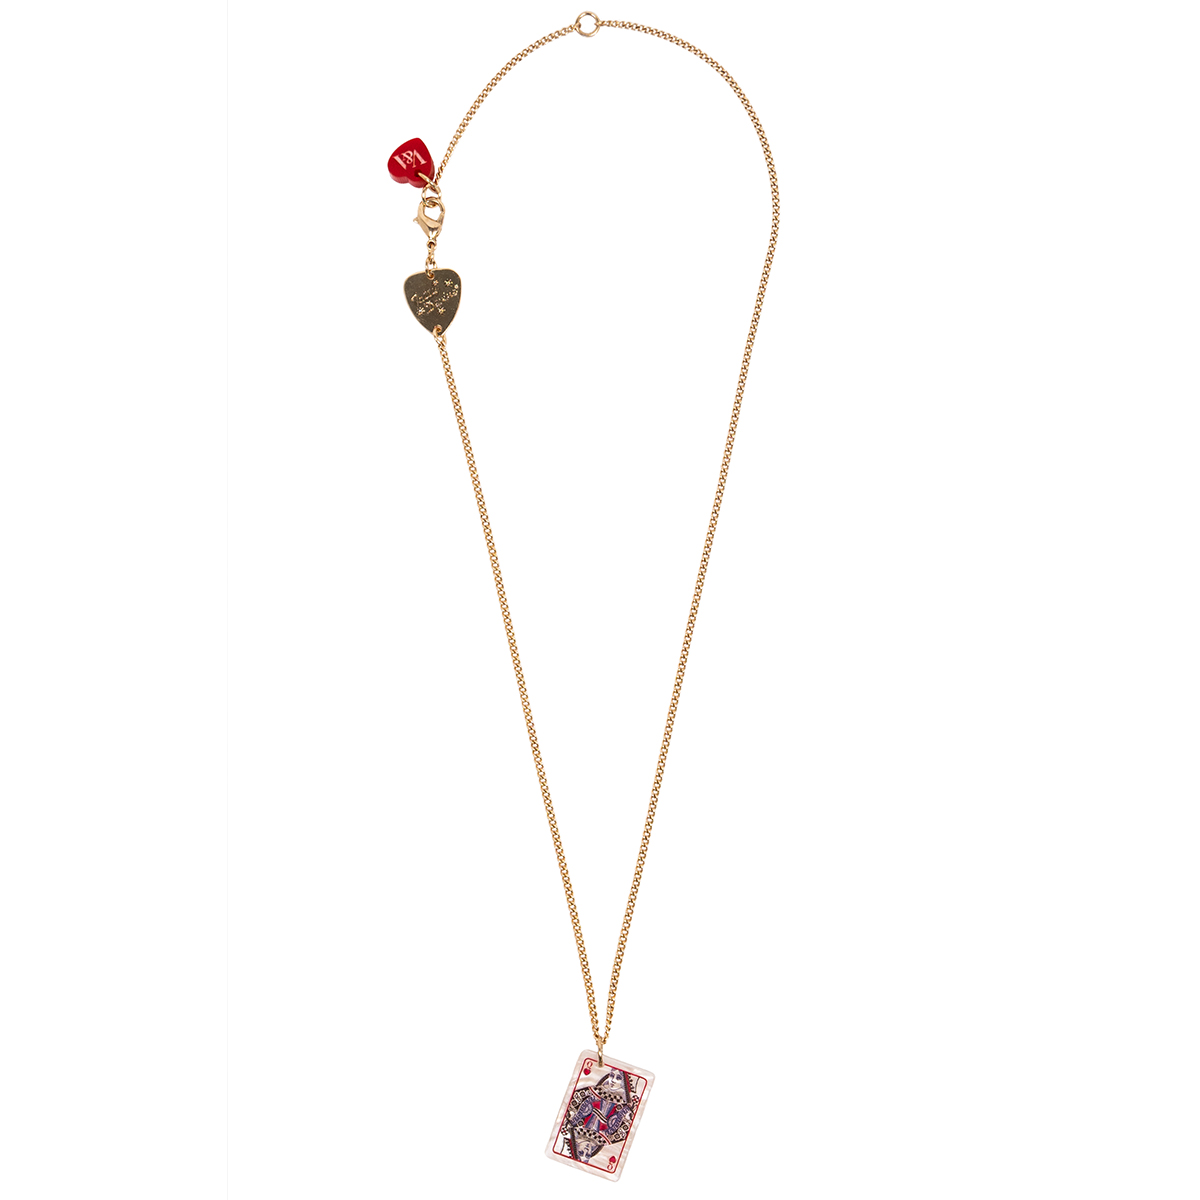 Queen of Hearts necklace by Tatty Devine